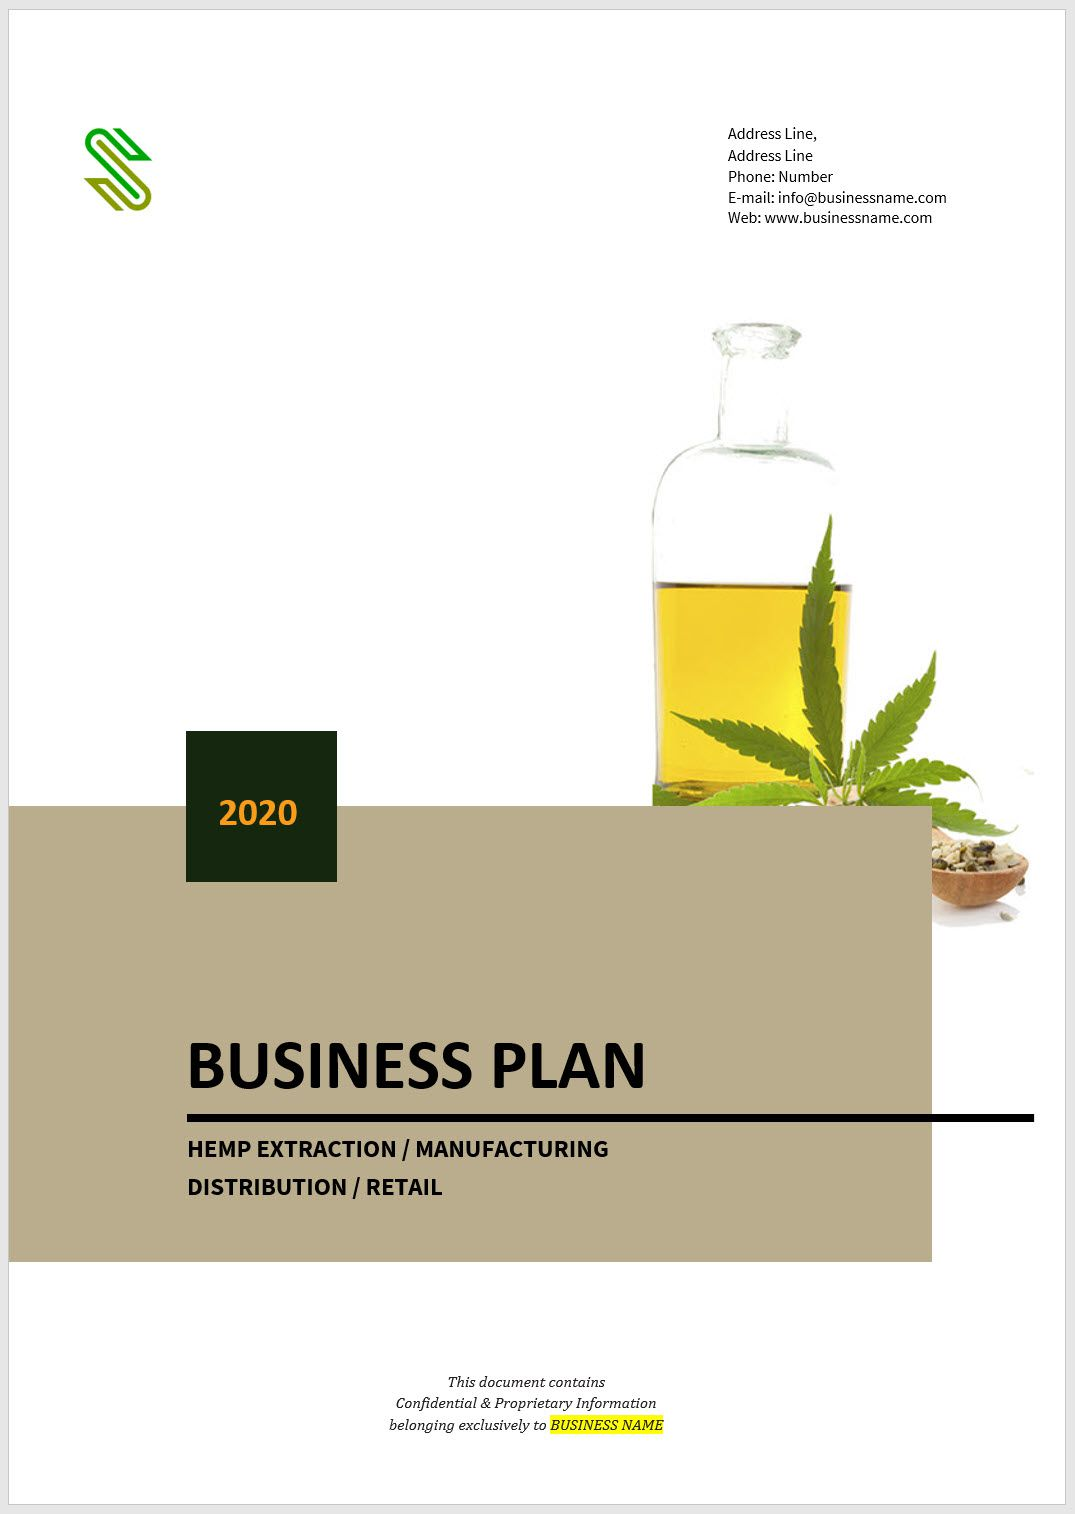 001 Fascinating Retail Busines Plan Template Concept  Free Online Store Example PdfFull